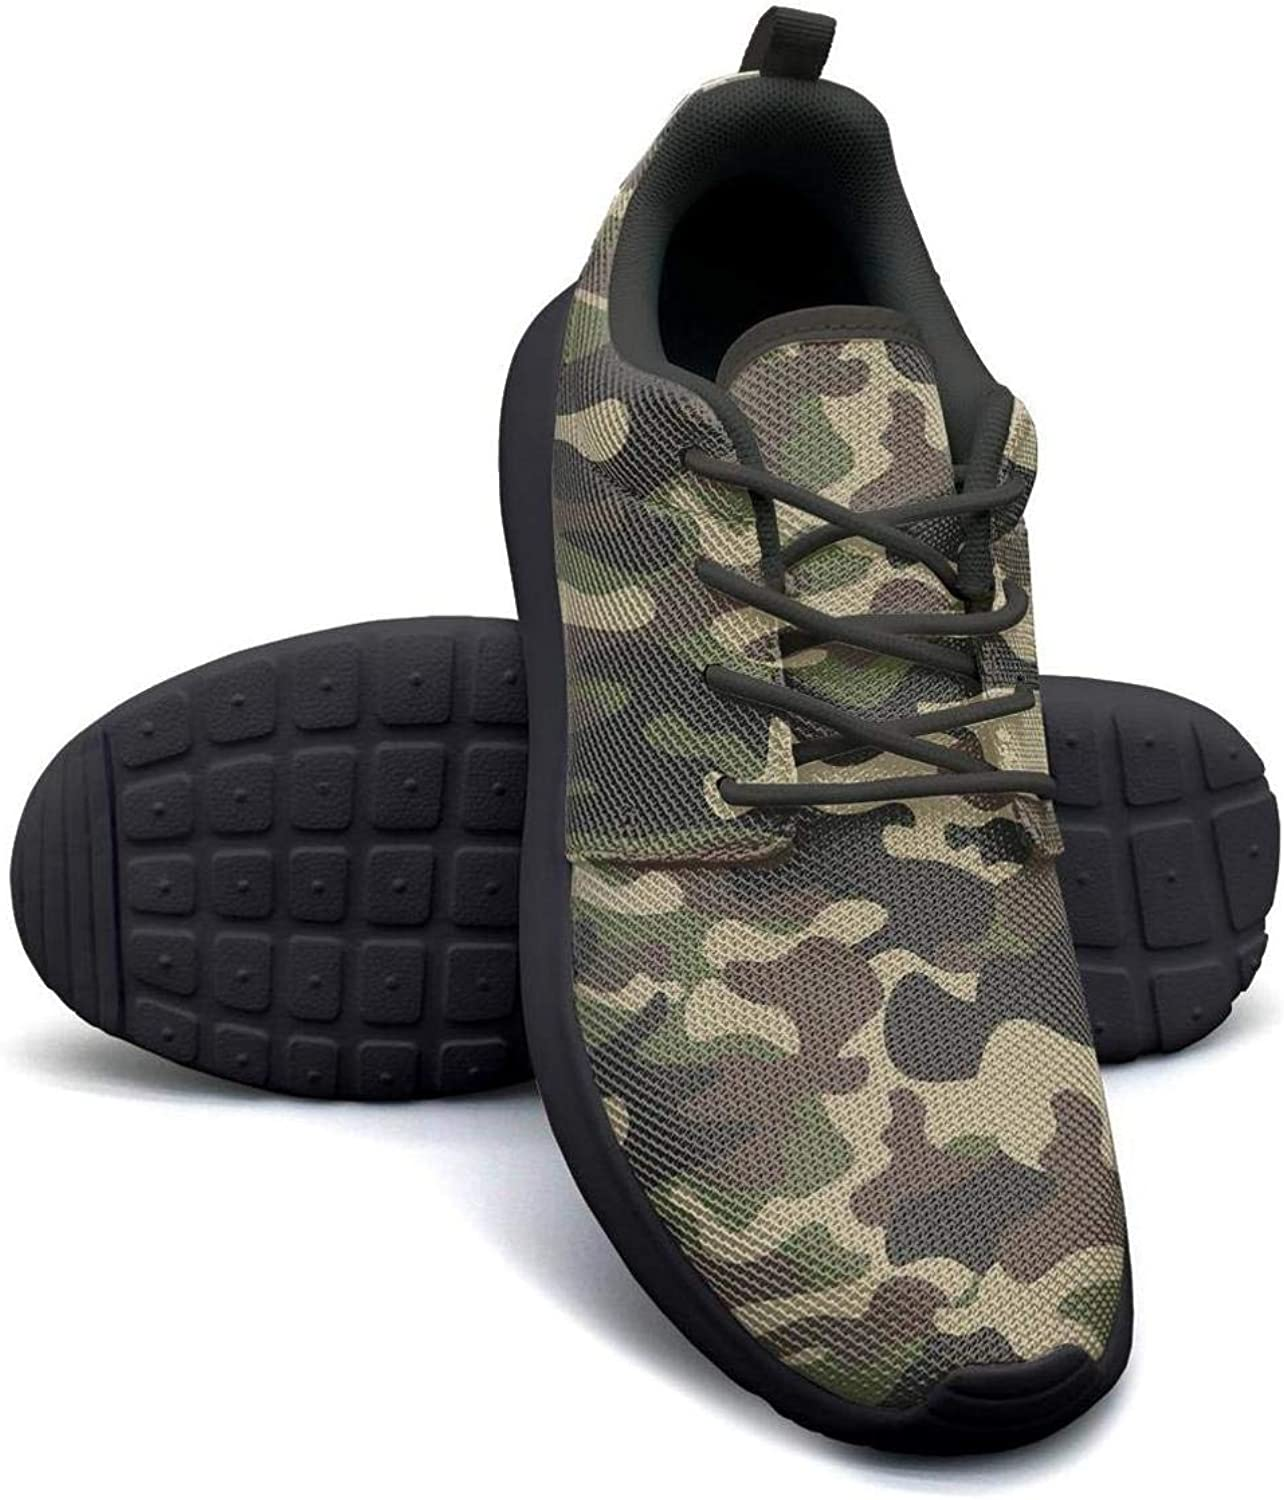 Hobart dfgrwe Camouflage Olive colors Forest camo Women Canvas Casual shoes Comfortable Fitness shoes